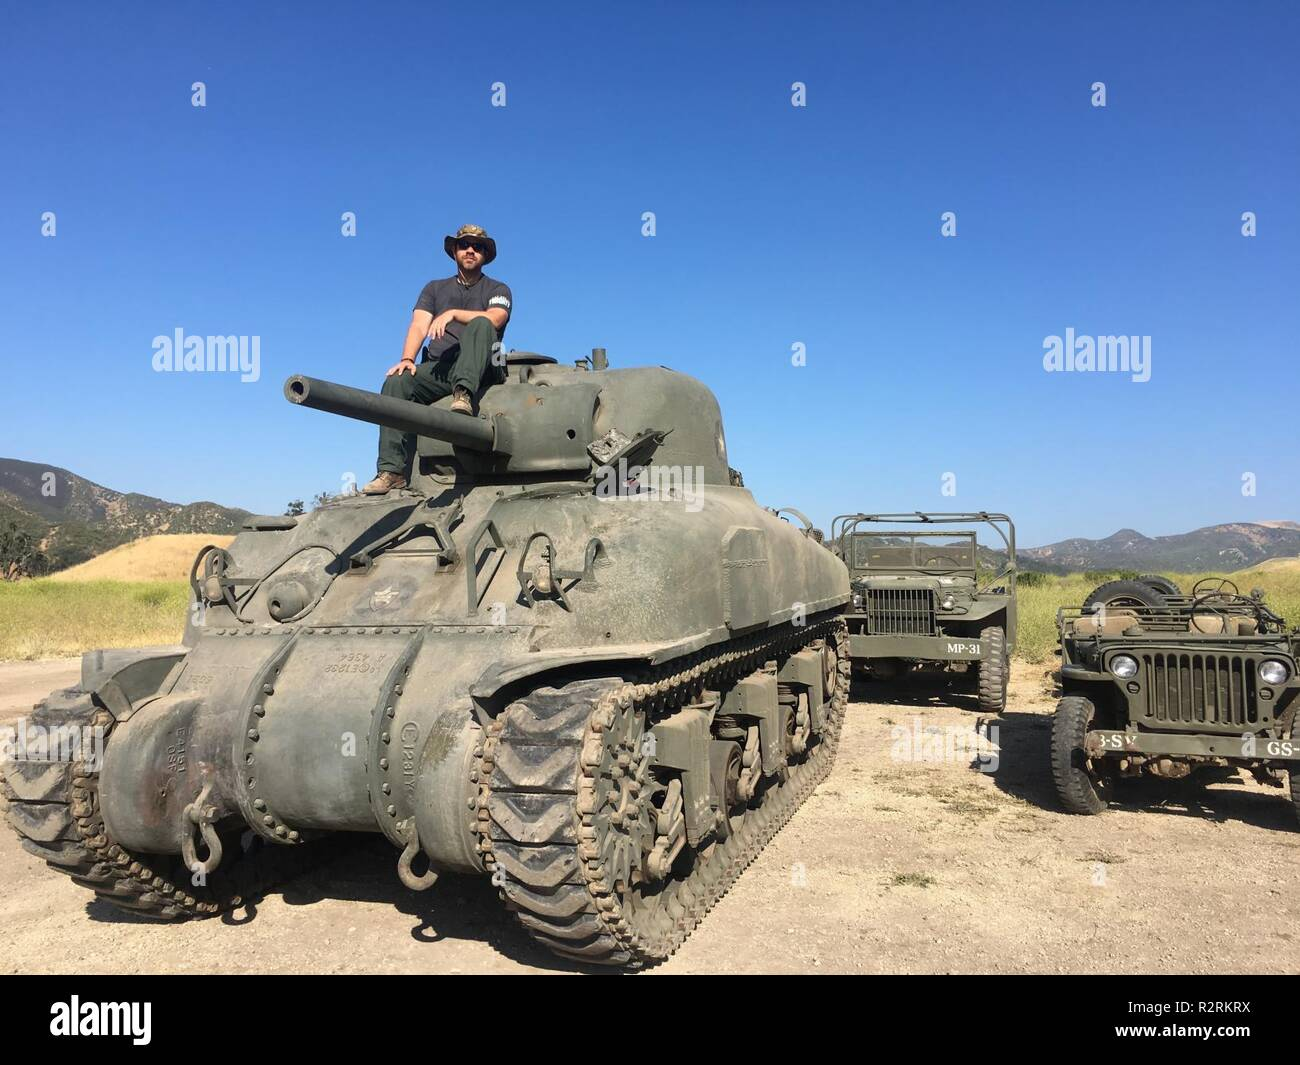 Used Military Vehicles >> Mike Dowling On Set On A Tank With Other Military Vehicles